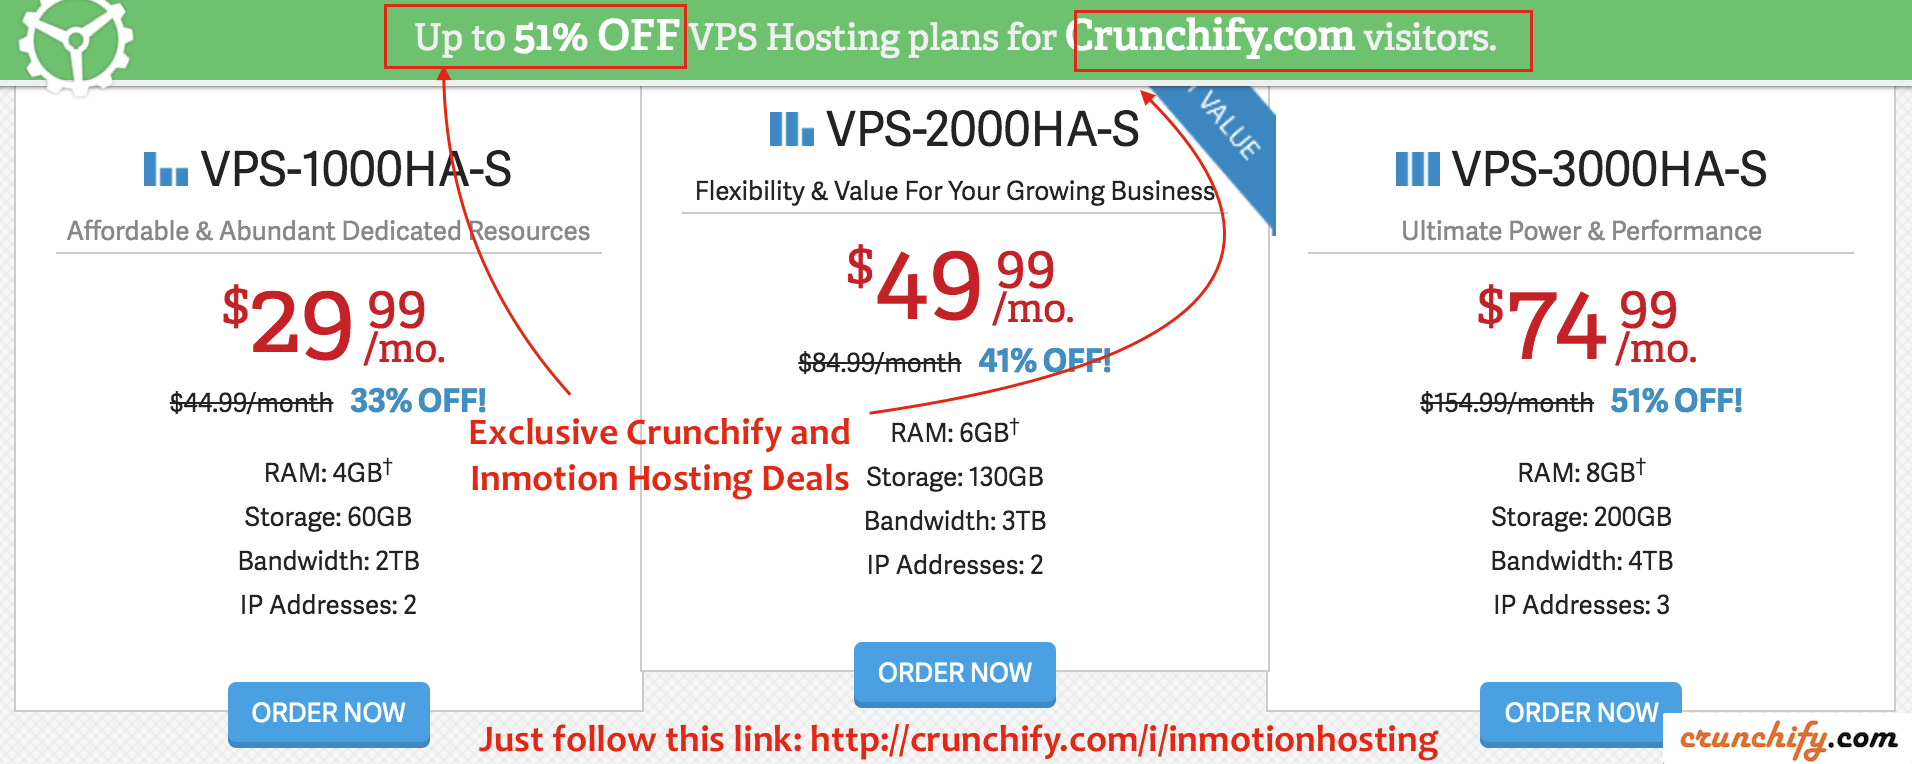 Inmotionhosting 51% off VPS Hosting Plan - Crunchify Deals